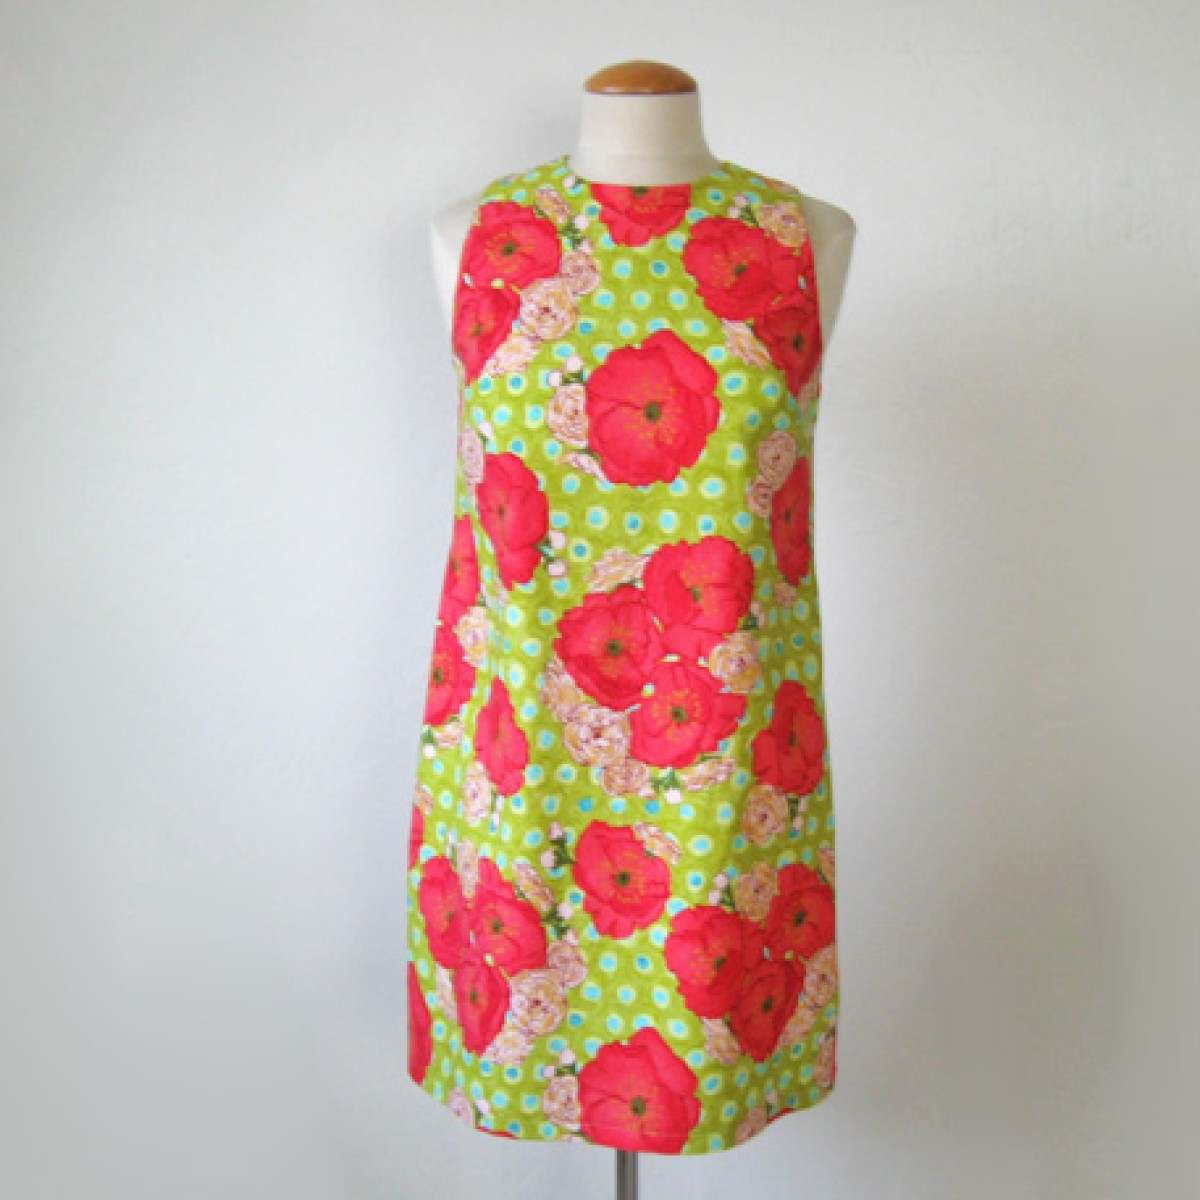 Pattern Design Sewing Dresses How To Sew Your First Dress A Step Step Photo Tutorial